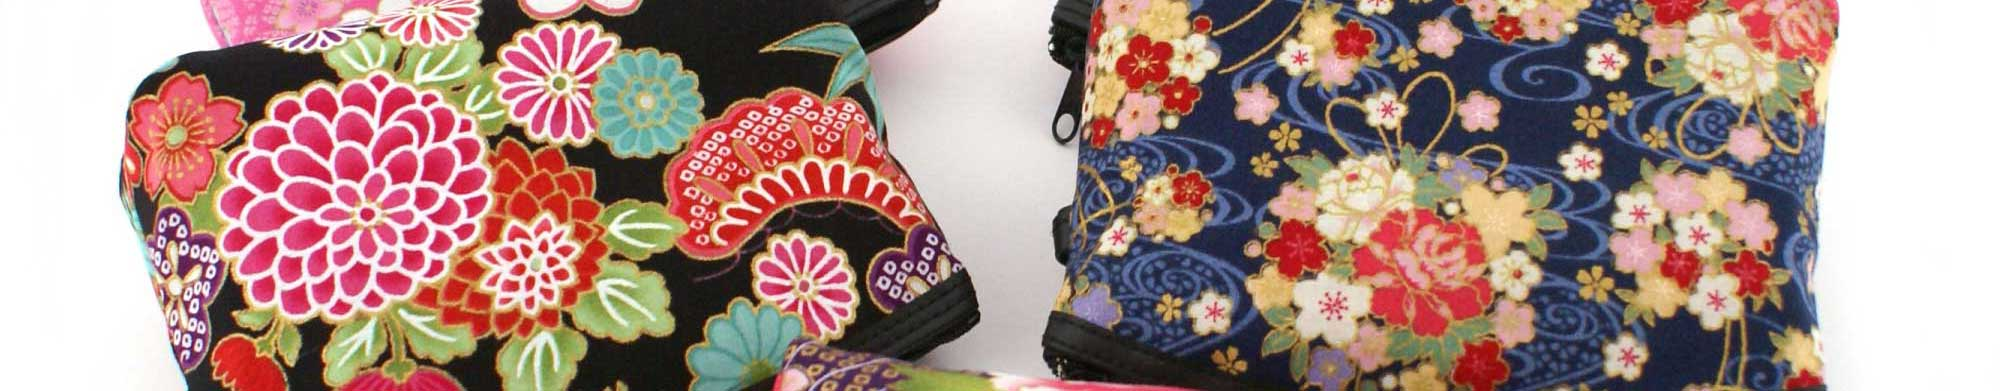 Japanese bags and purses